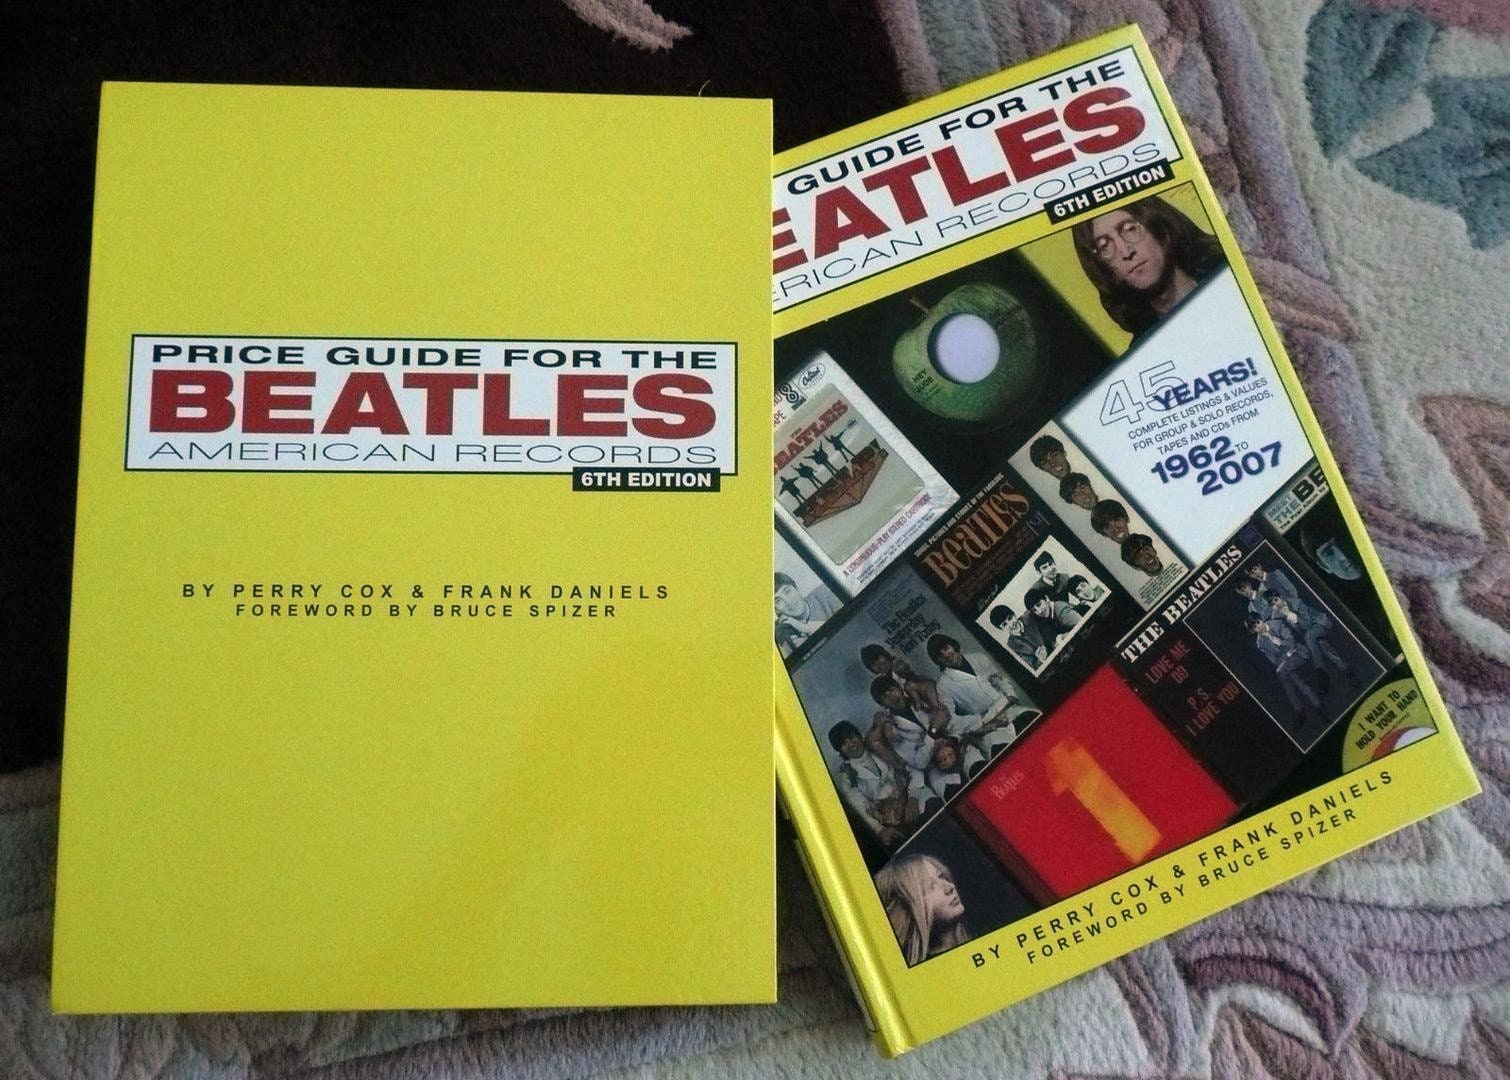 Price Guide for Beatles American Records (2007) SIGNED by